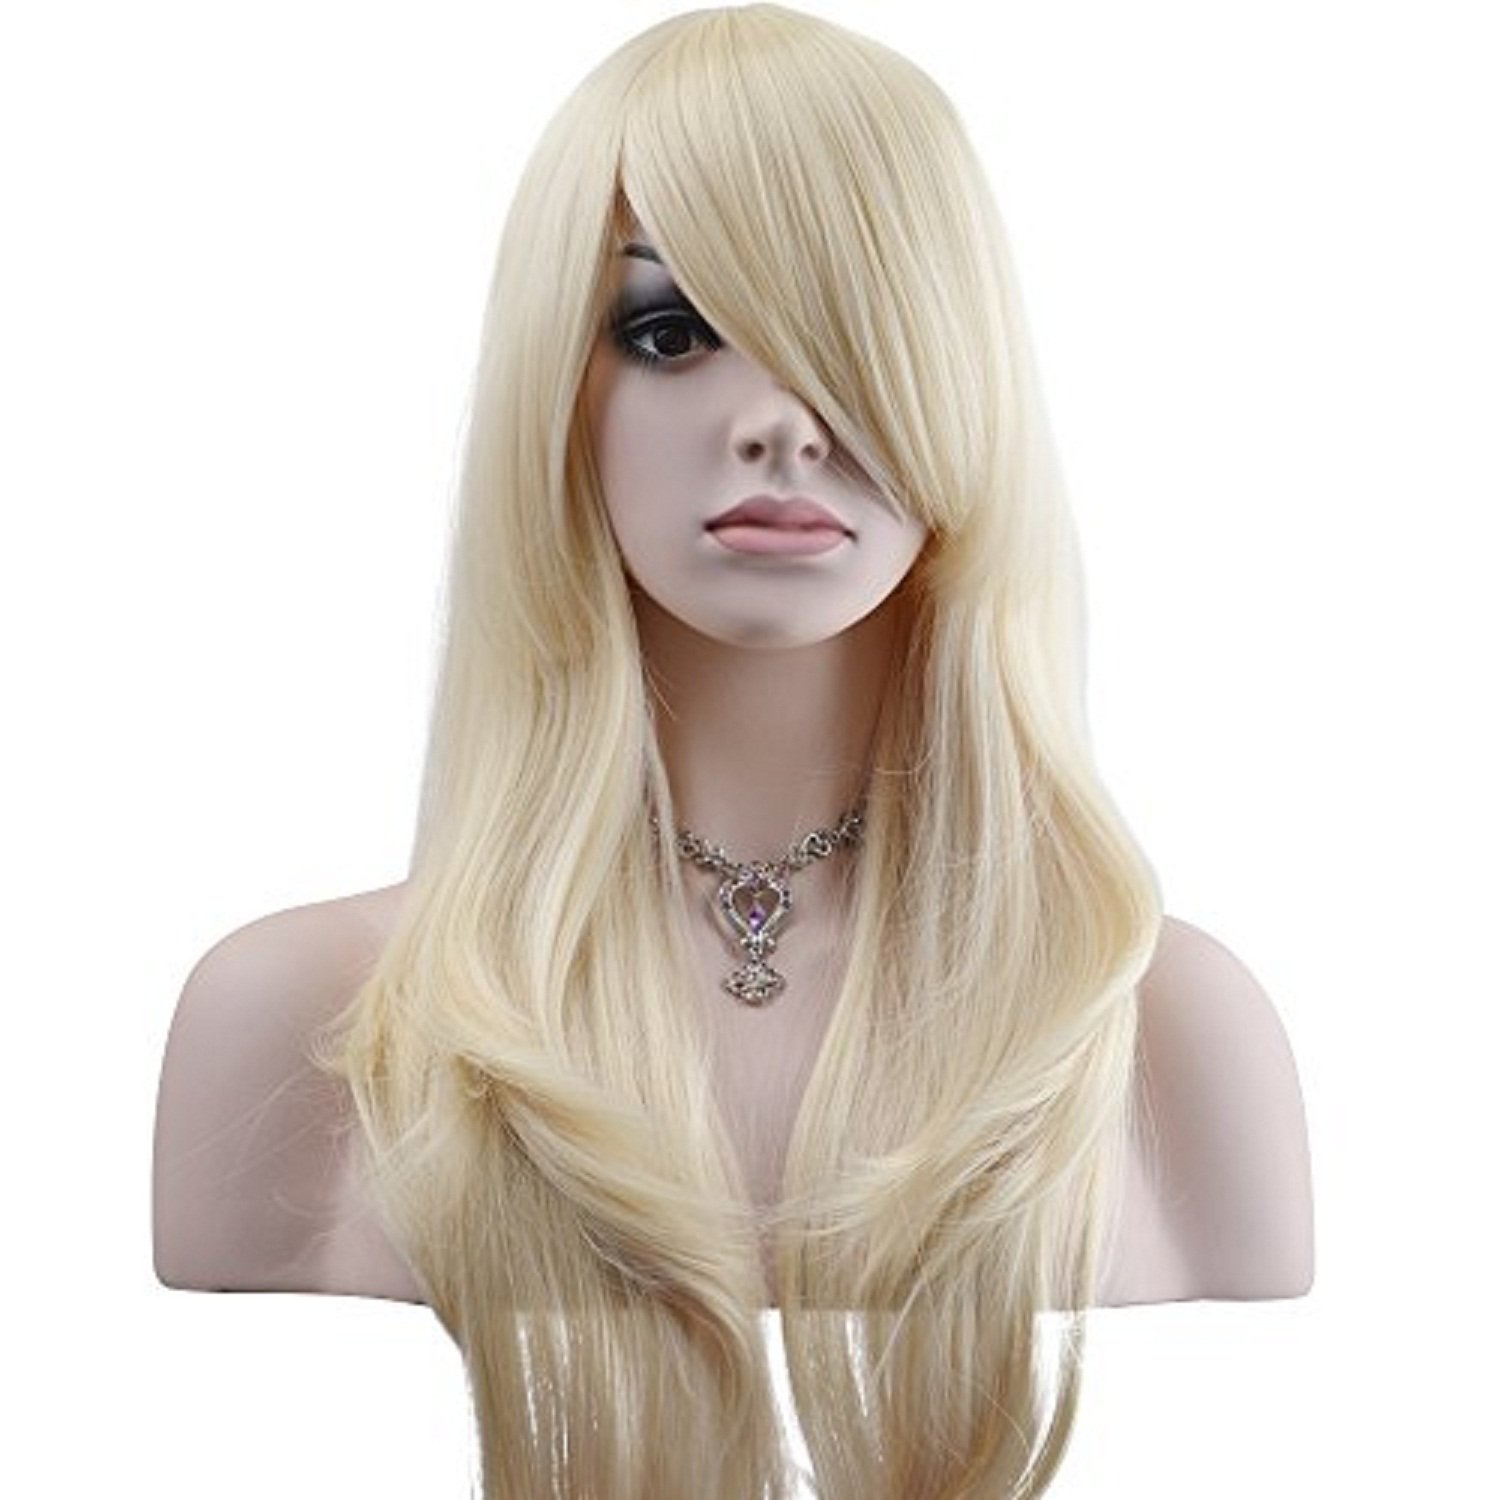 YOPO 28'' Wig Long Big Wavy Hair Women Cosplay Party Costume Wig(Light Blonde) by YOPO (Image #1)